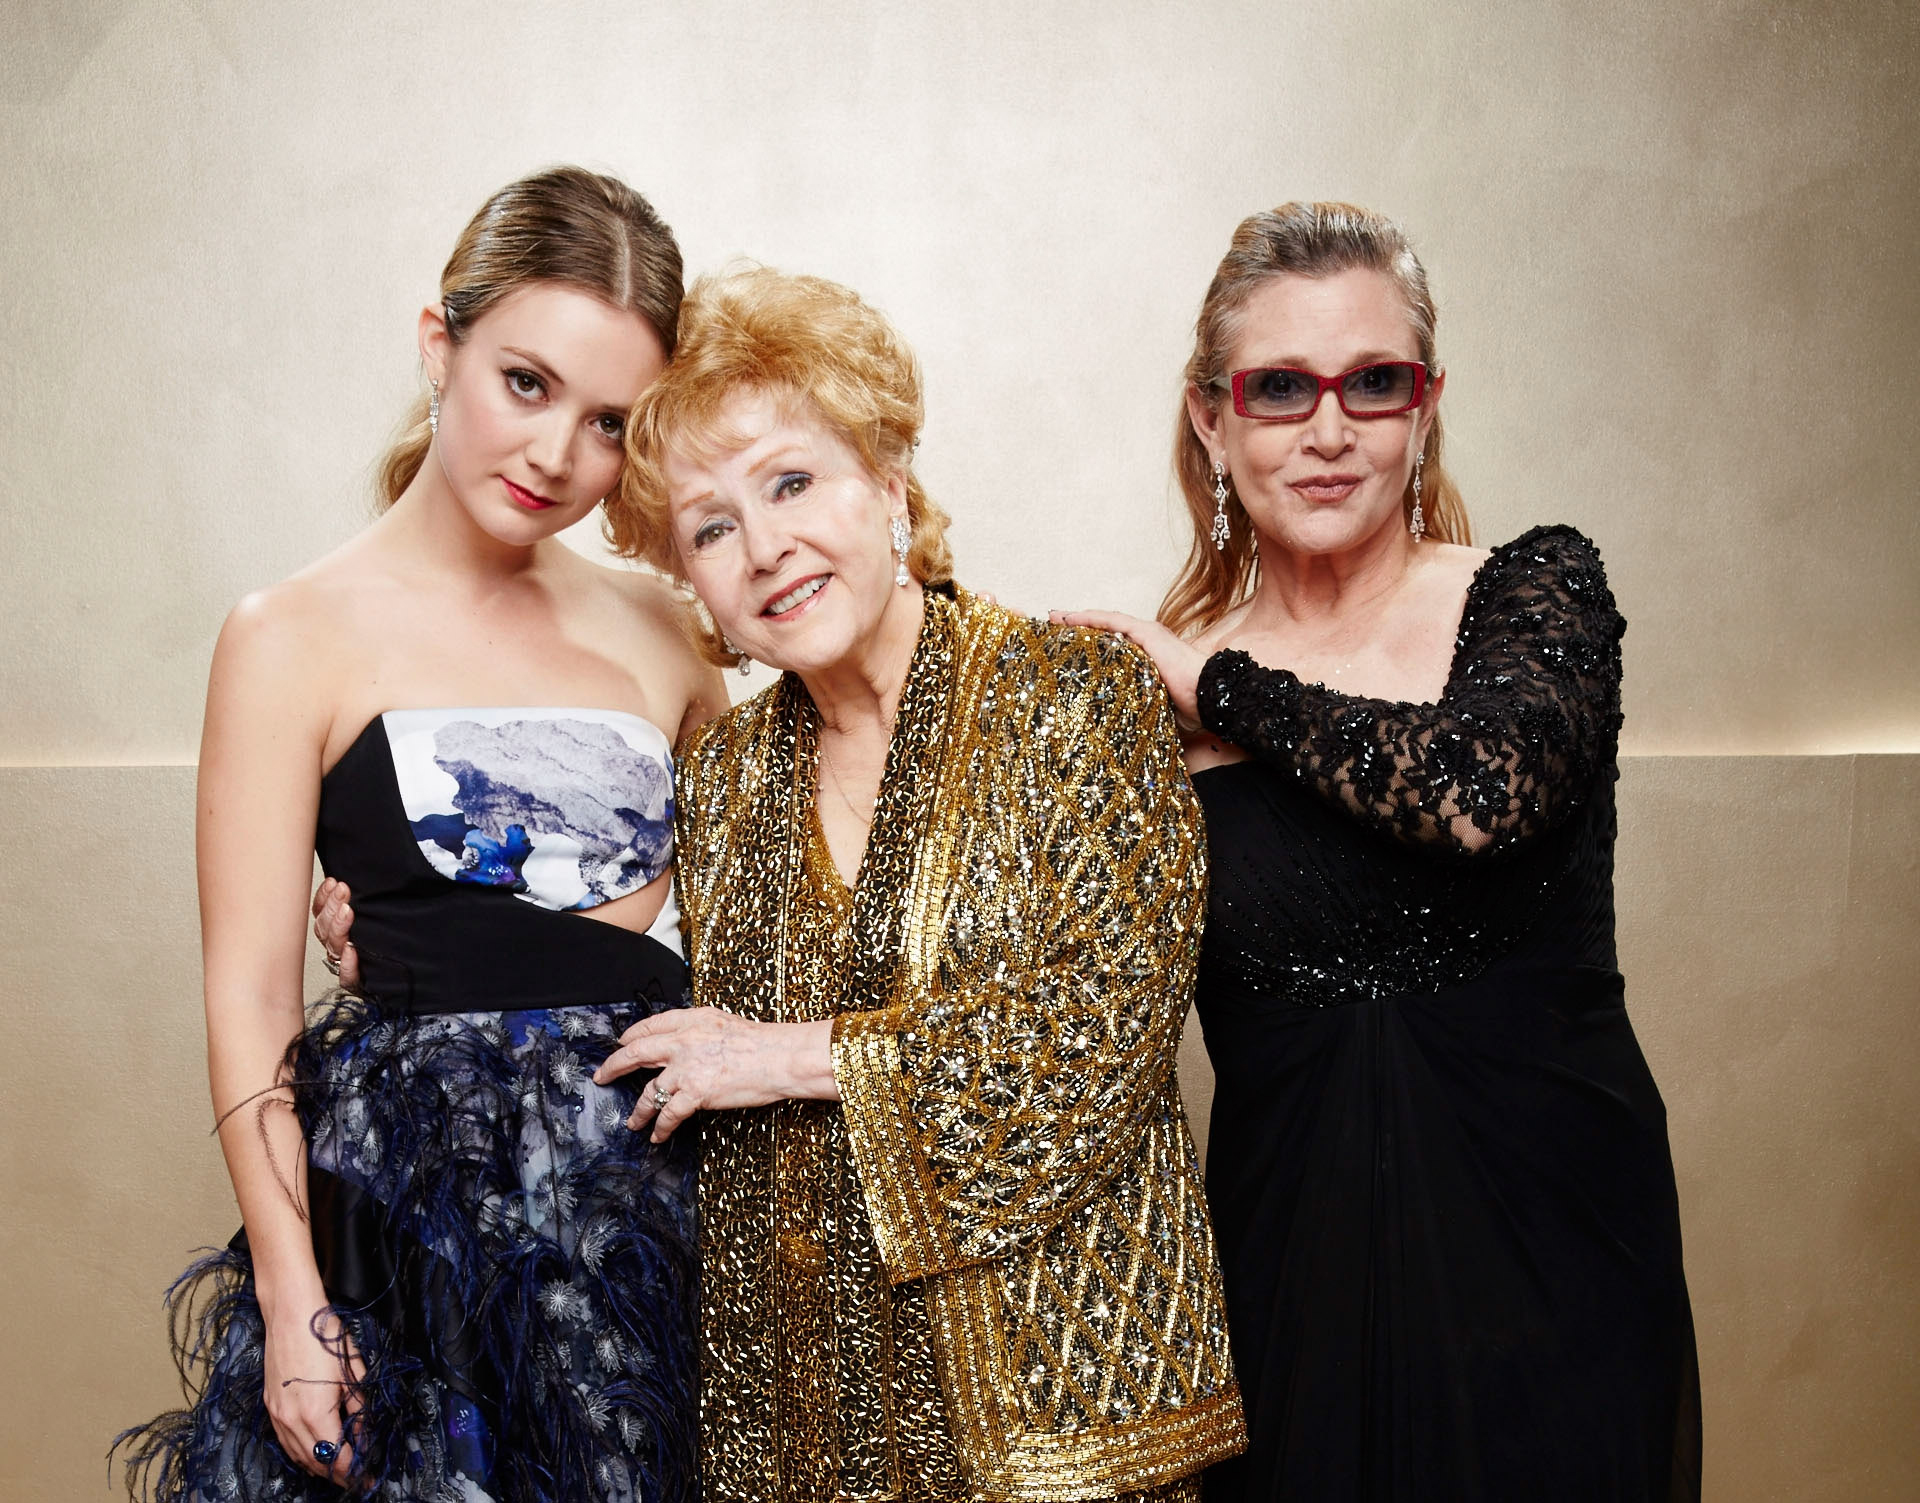 Billie Lourd Posts Touching Tribute to Late Grandmother Debbie Reynolds for Her 86th Birthday